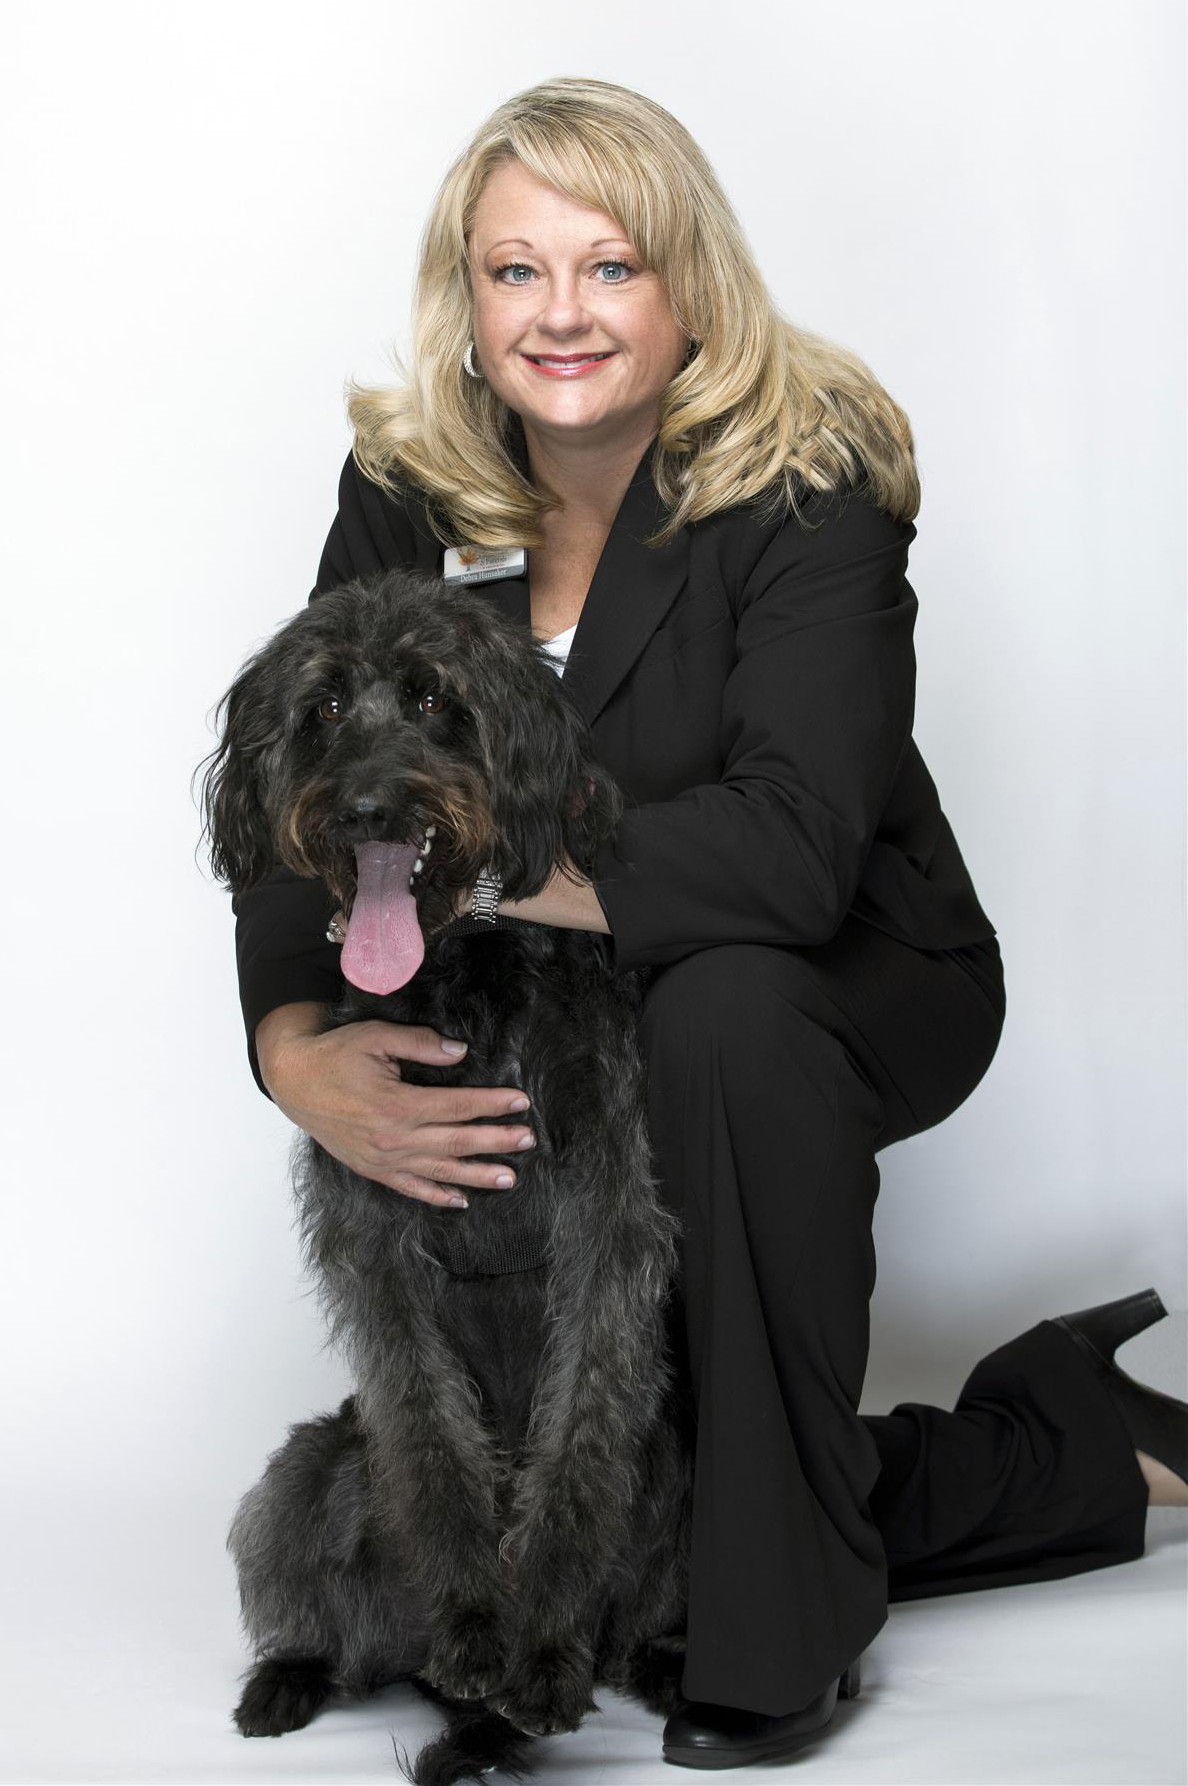 Bella, Our Grief Therapy Dog, pictured with Debbie Hunsaker